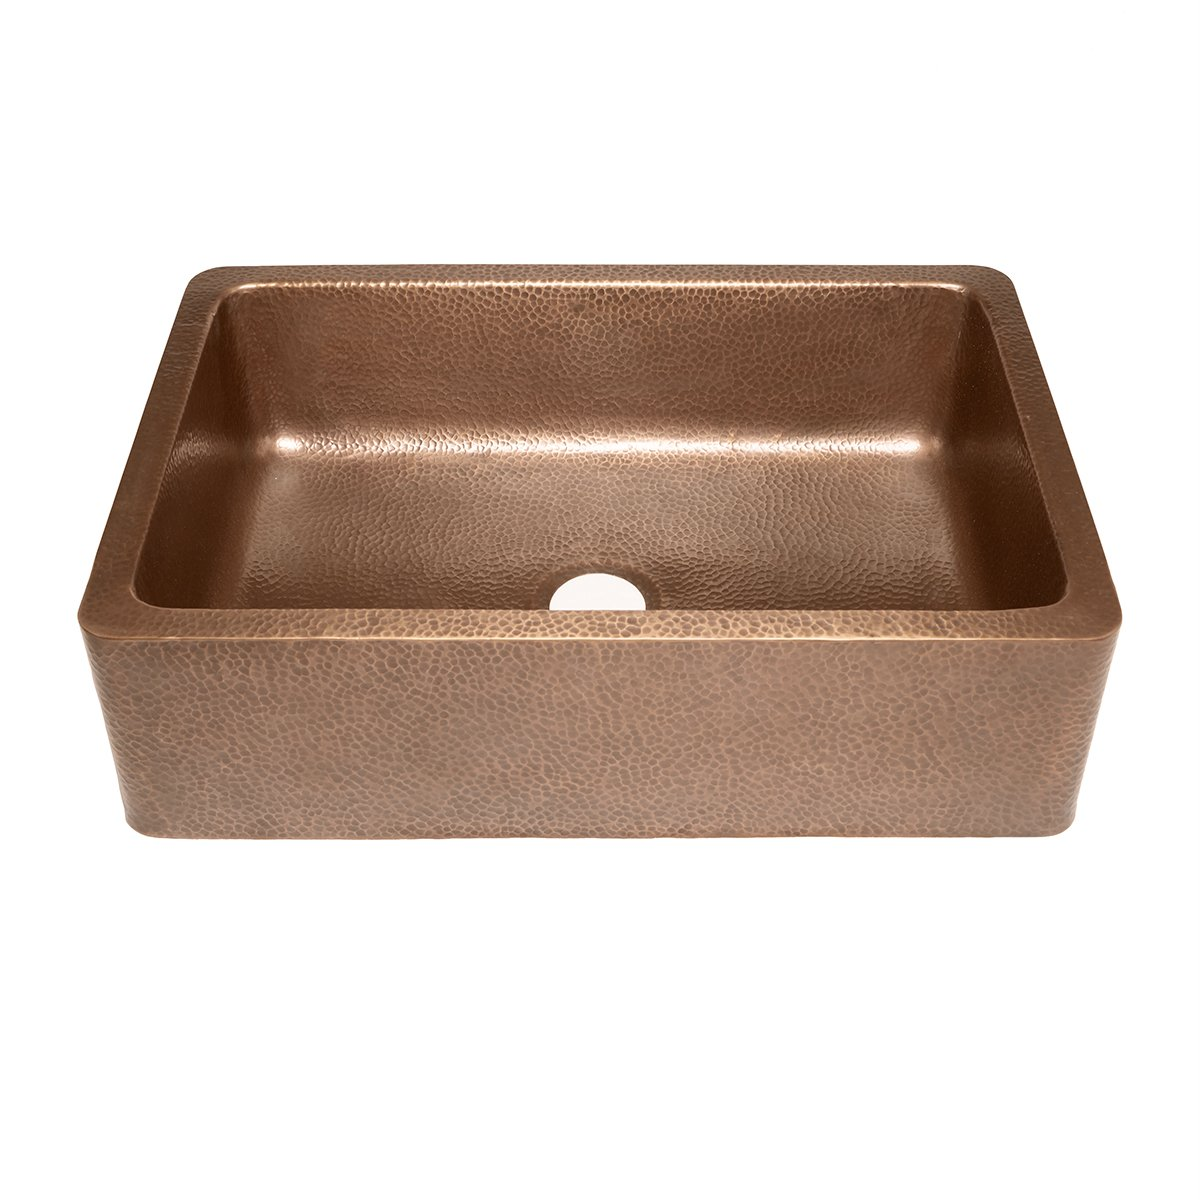 Adams Farmhouse Apron Front Handmade Copper Kitchen Sink Review Uncle Paul&